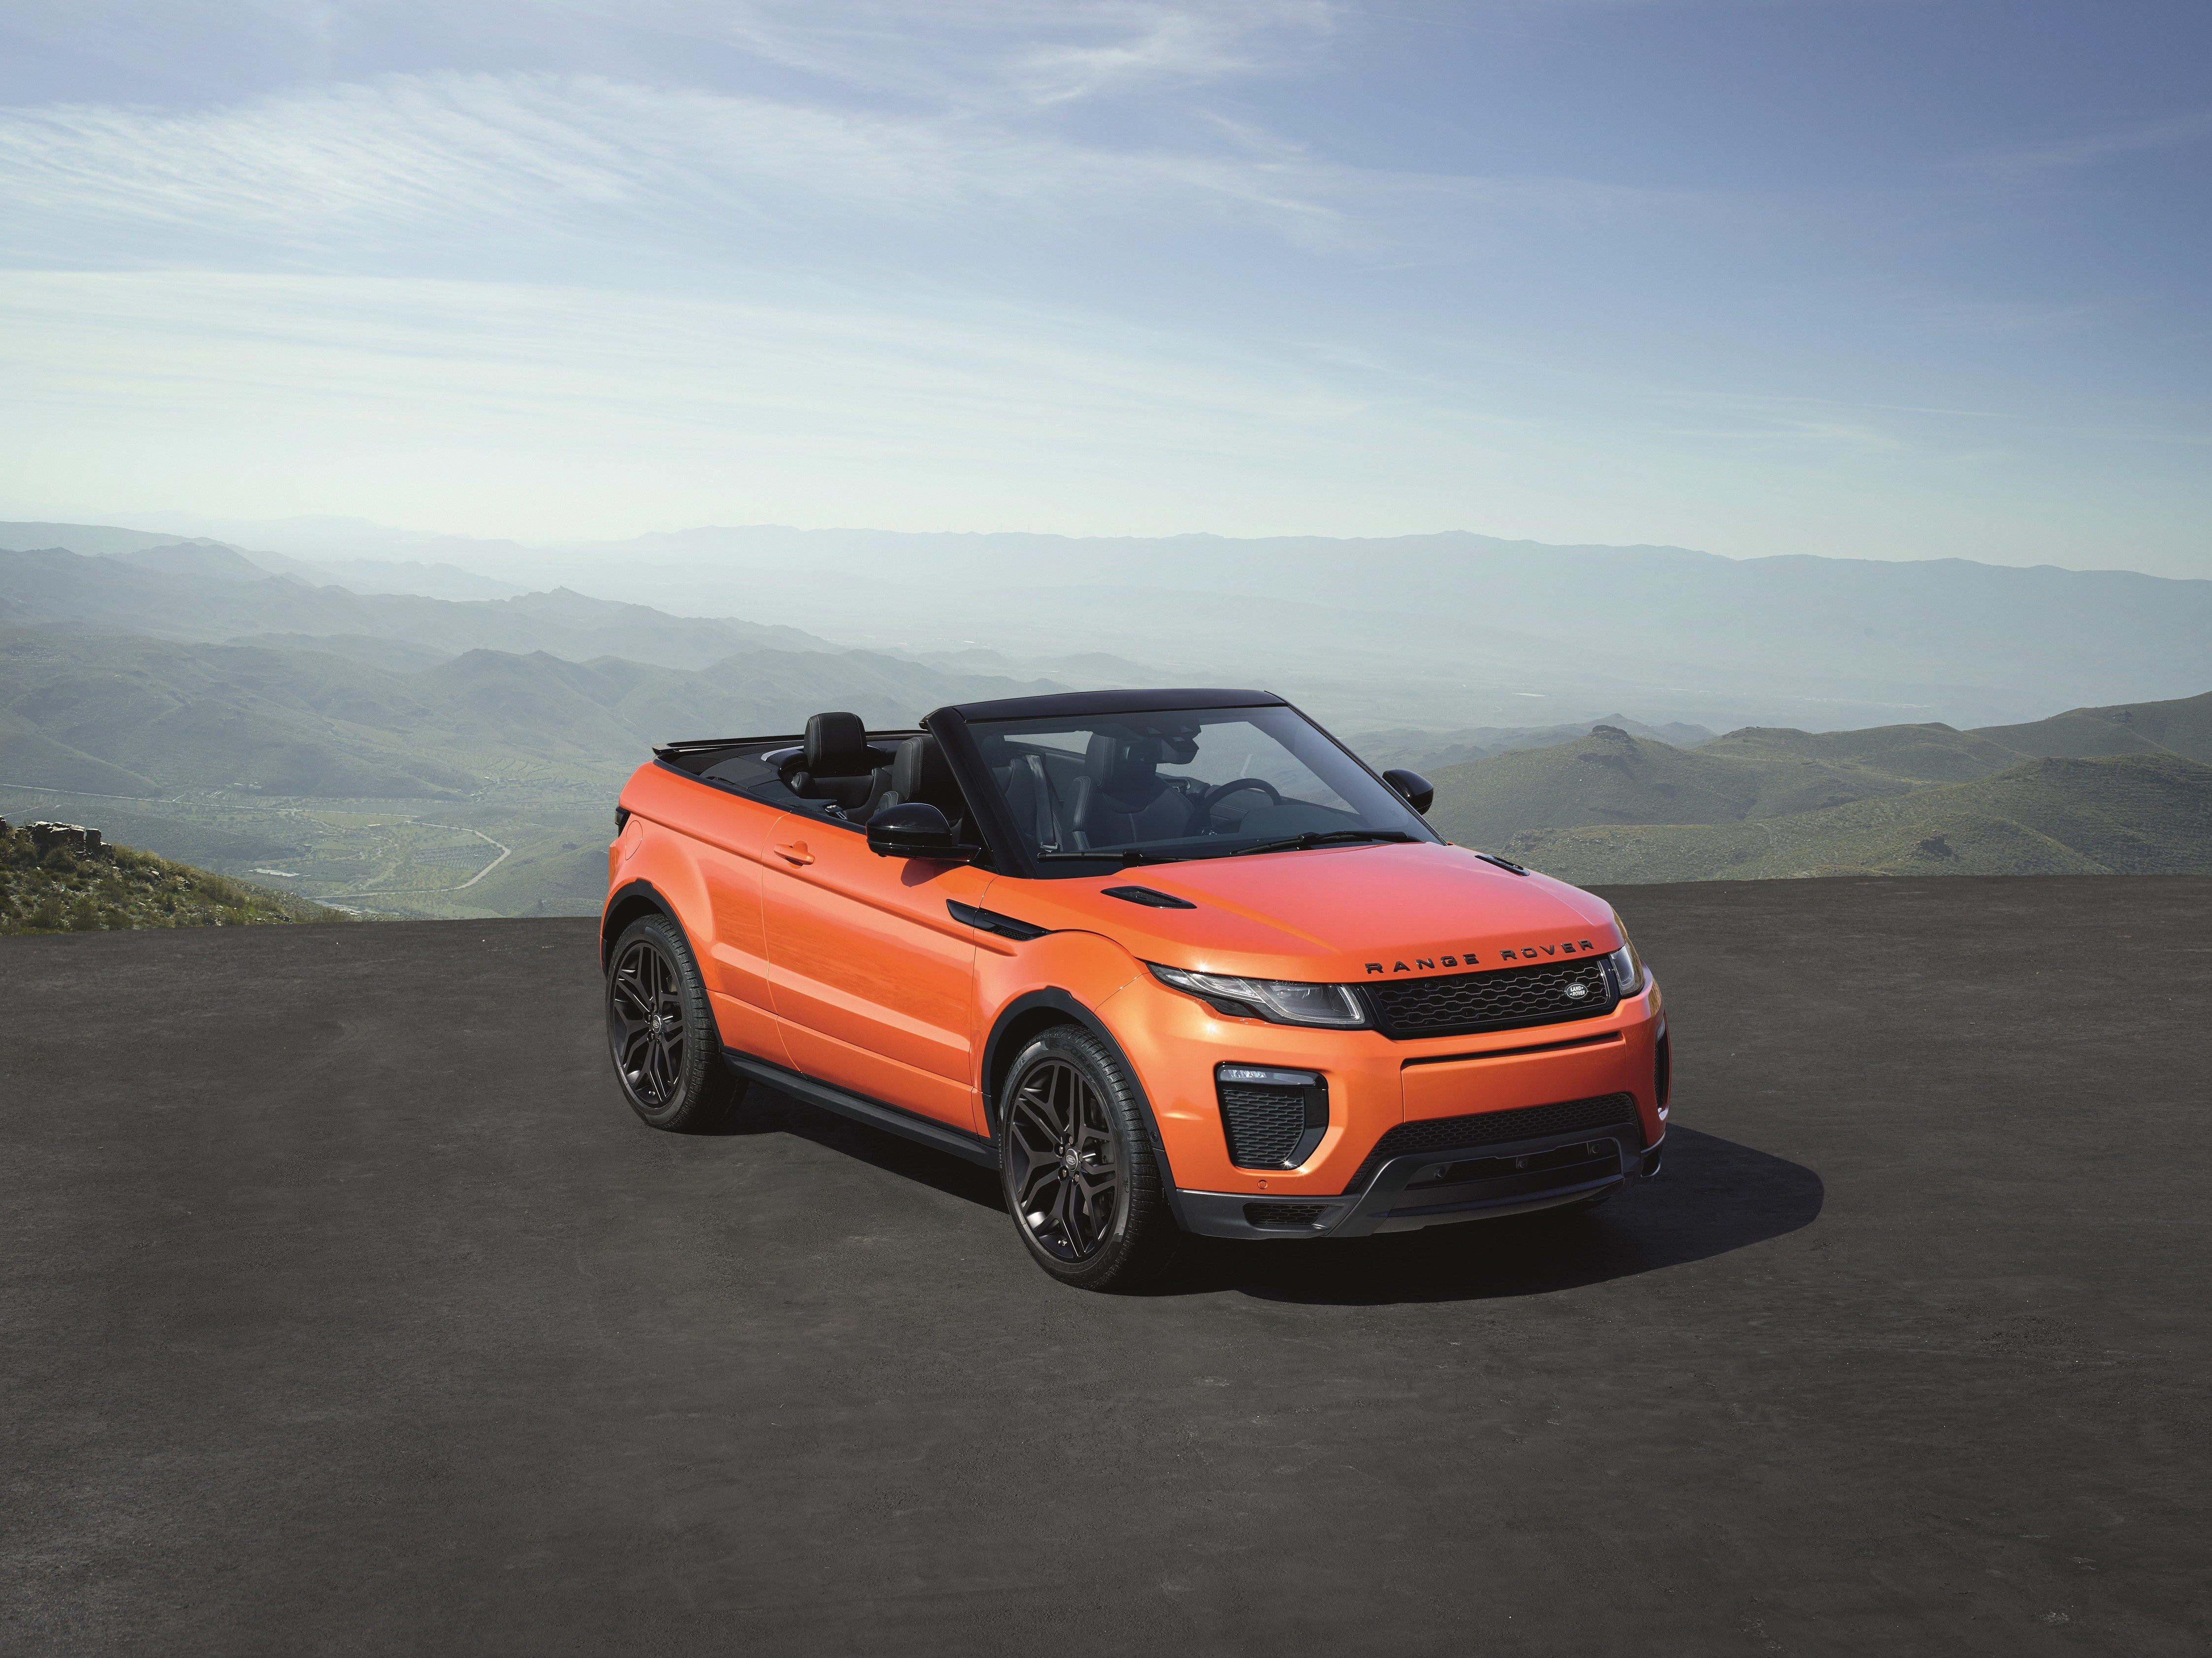 Land Rover Unveils First Ever Range Rover Convertible the Evoque